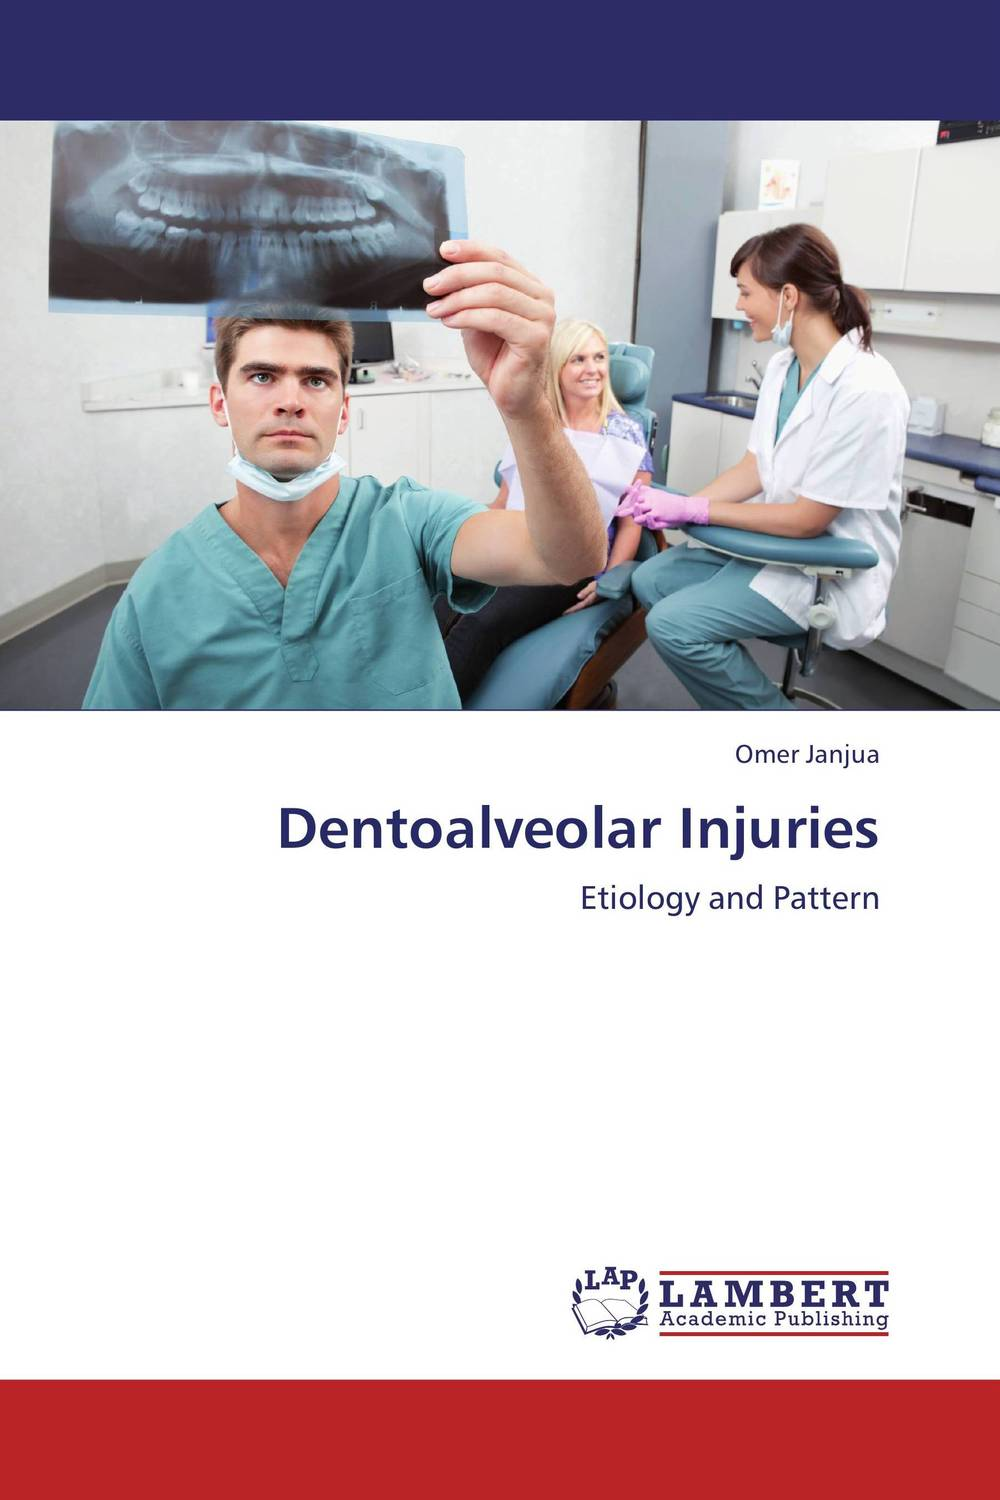 Dentoalveolar Injuries concepts of gingiva and gingival crevicular fluid